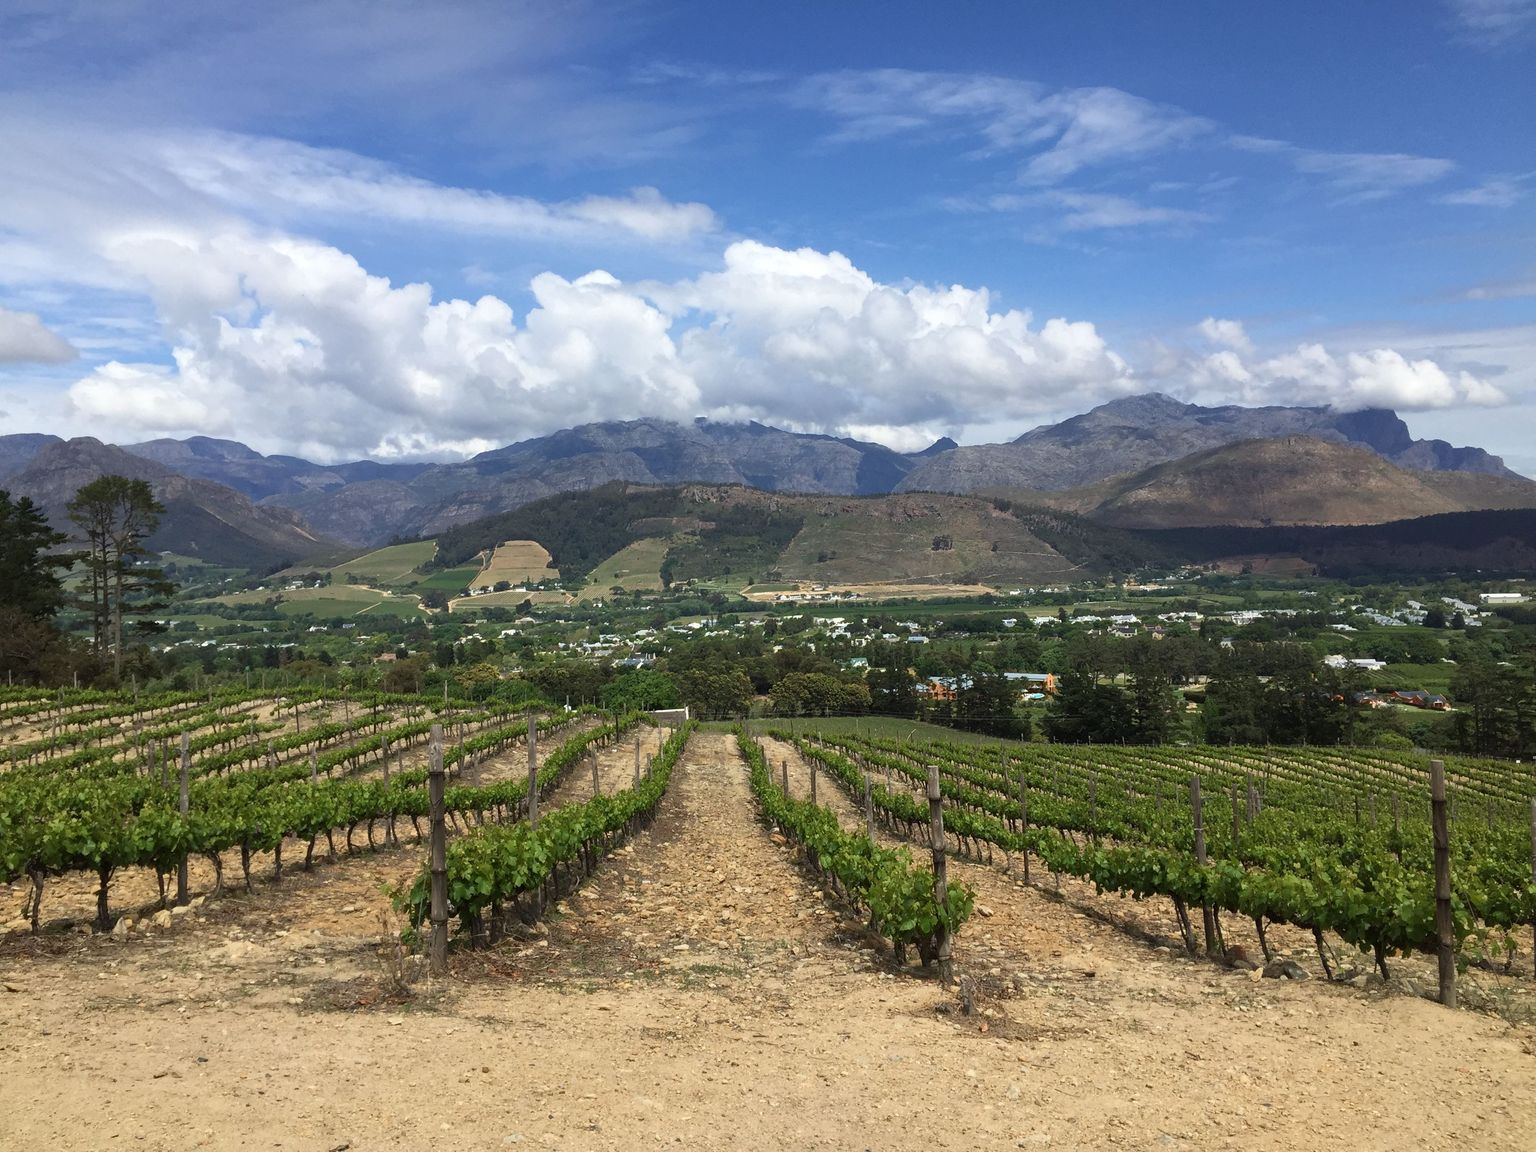 MORE PHOTOS, Full-day Winelands Explore Private Tour of Stellenbosch, Franschhoek and Paarl